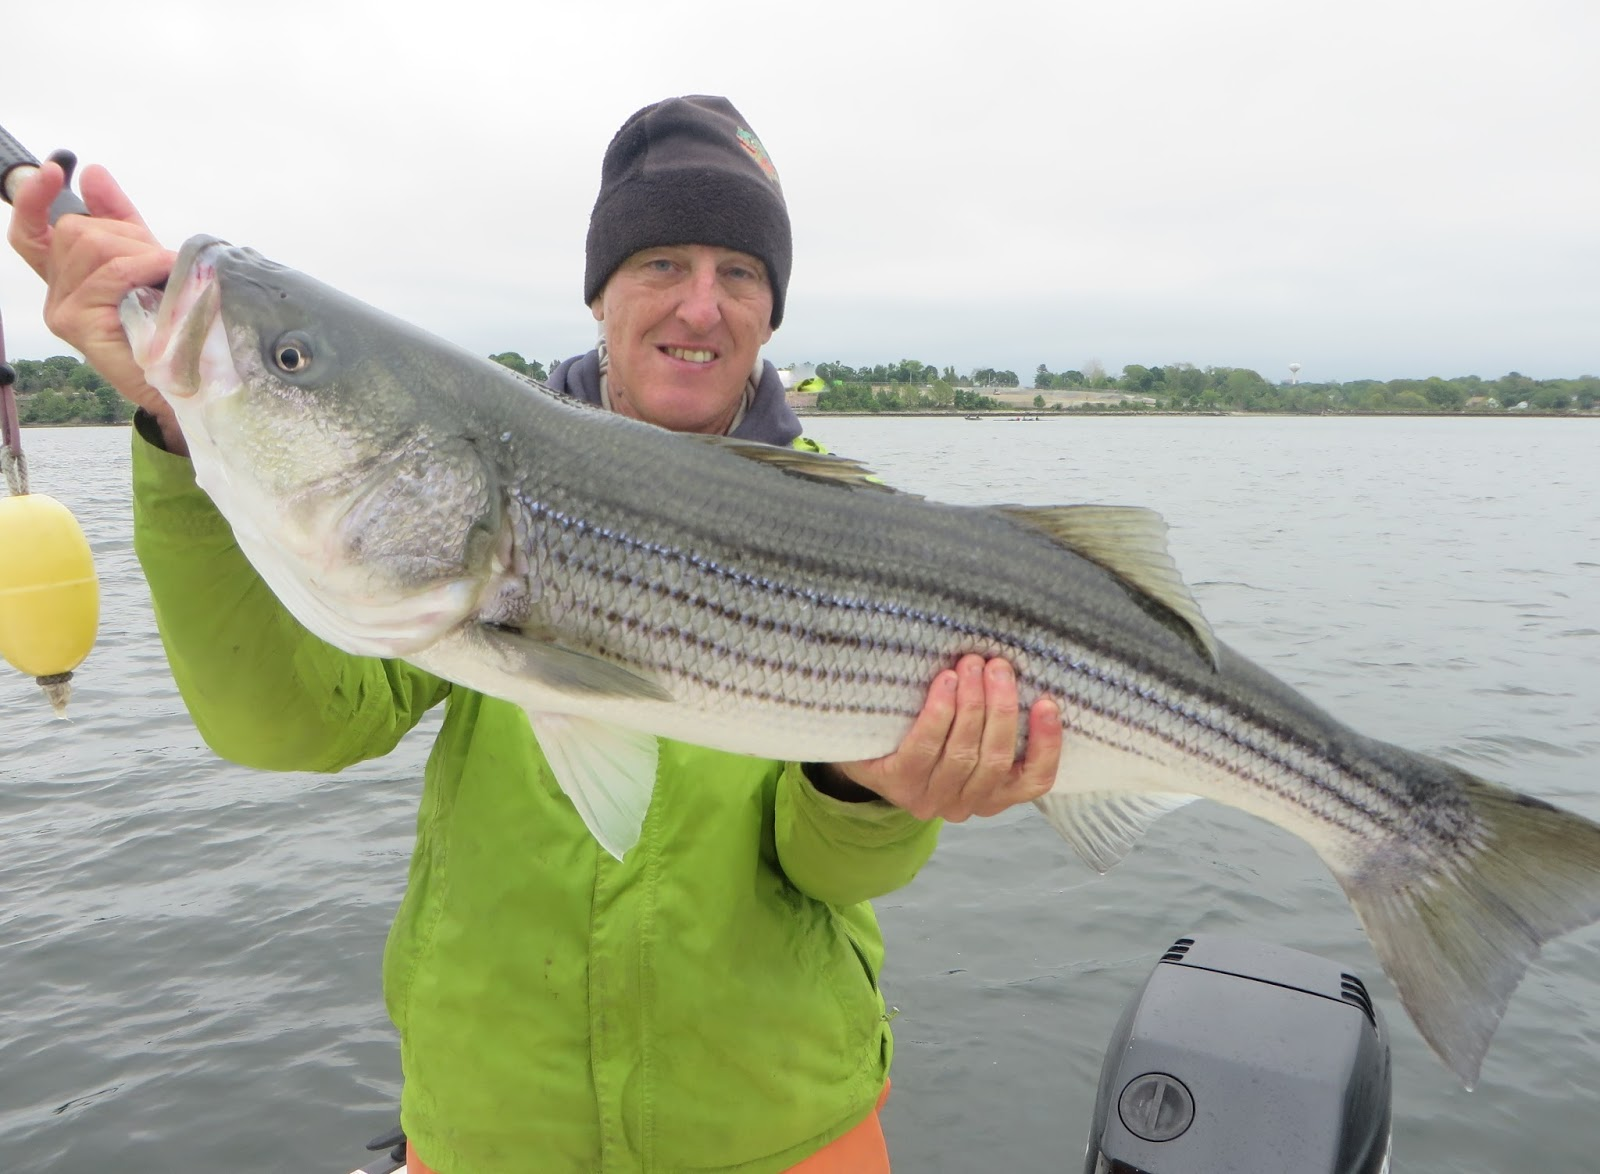 Rhode island striped bass pic of the day big fish on for Best striper fishing spot in ri